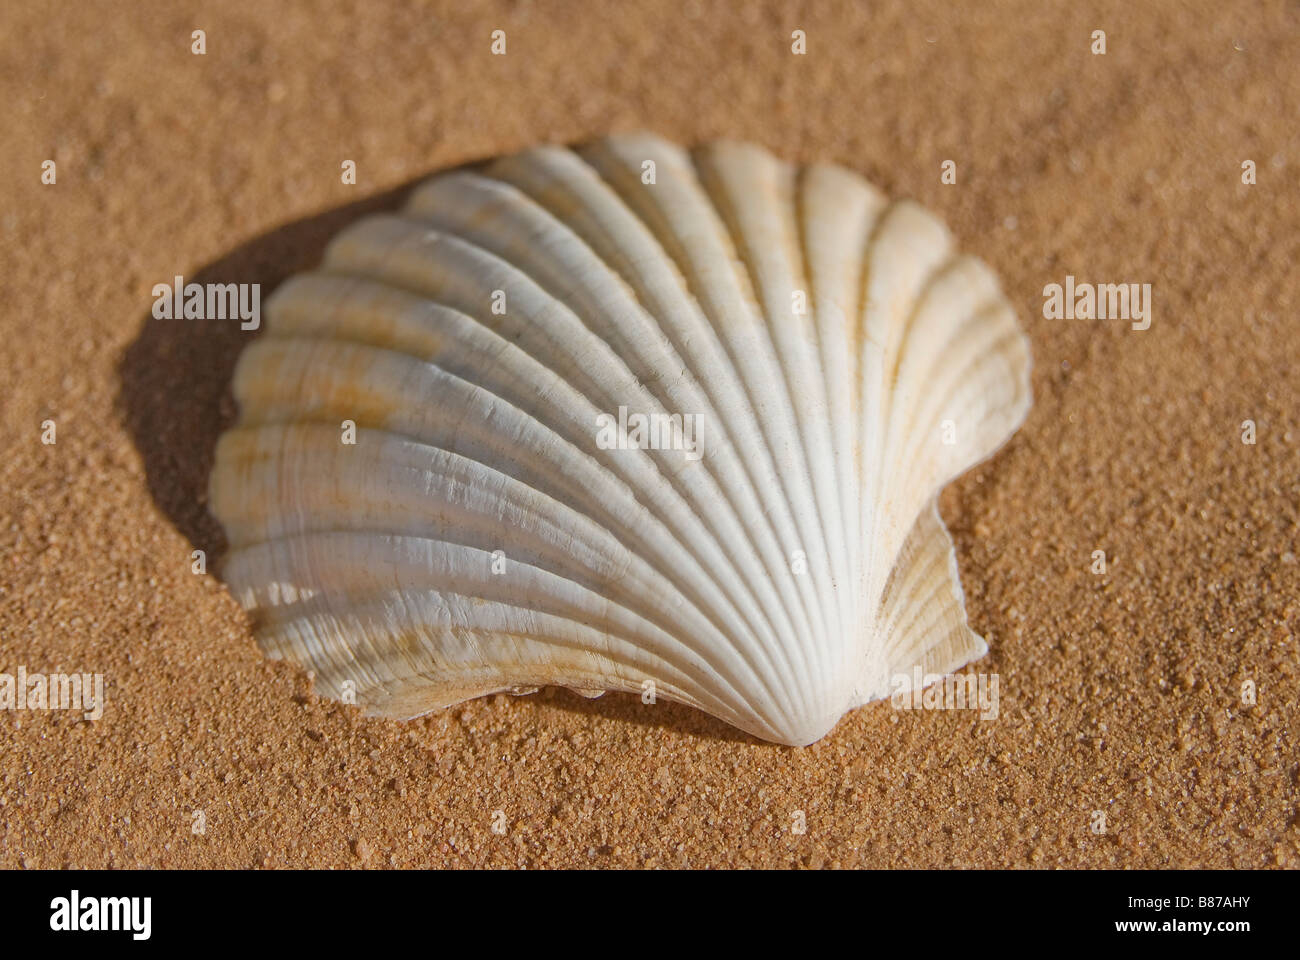 Scallop Shell Stock Photos Scallop Shell Stock Images Alamy